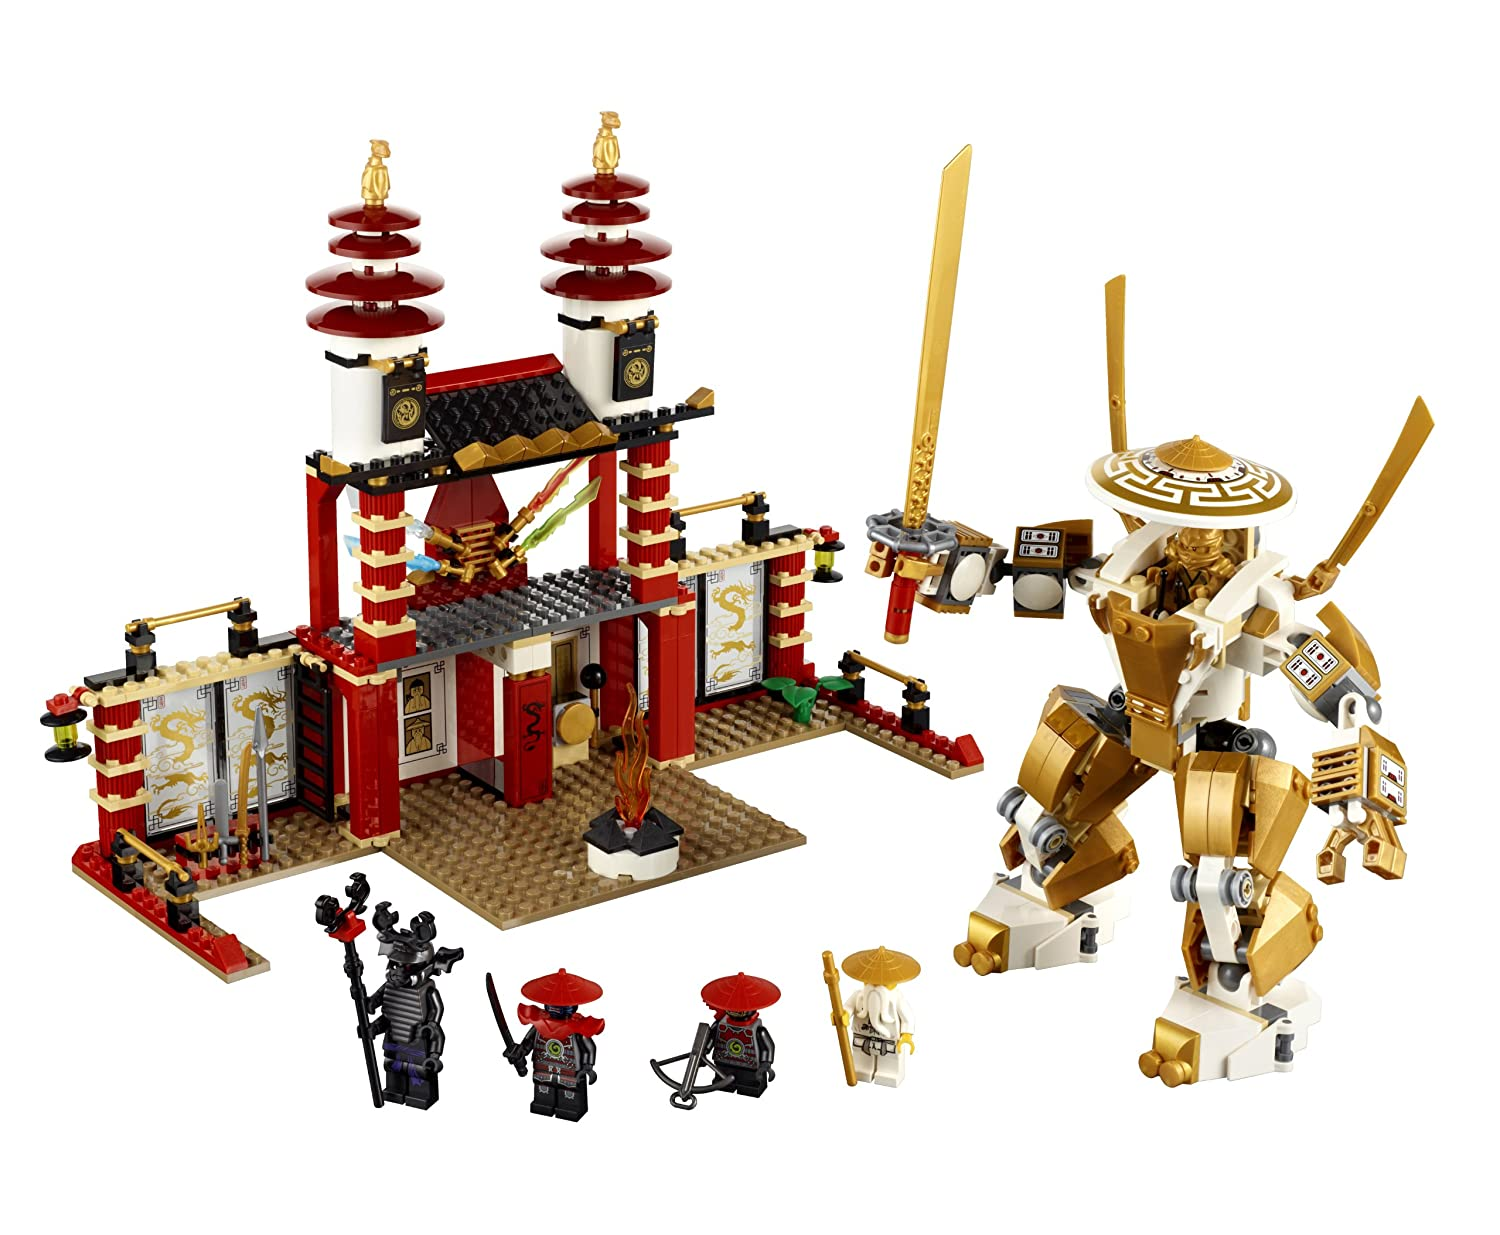 Lego ninjago temple of light - Ninja ninjago ...